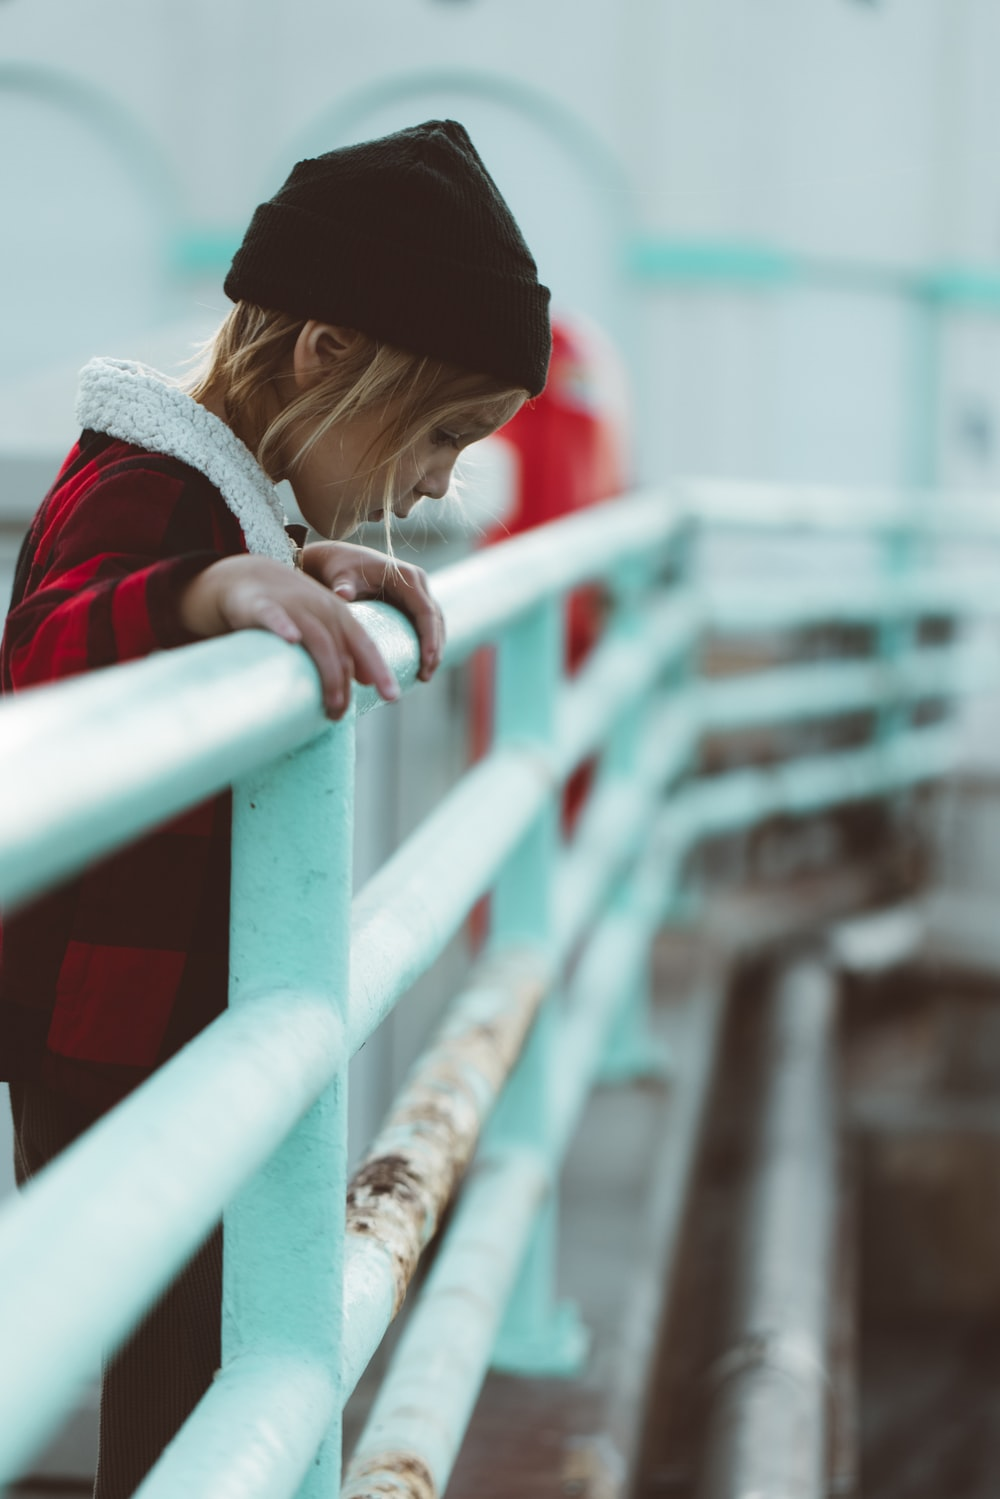 woman in red and black jacket leaning on white metal railings during daytime